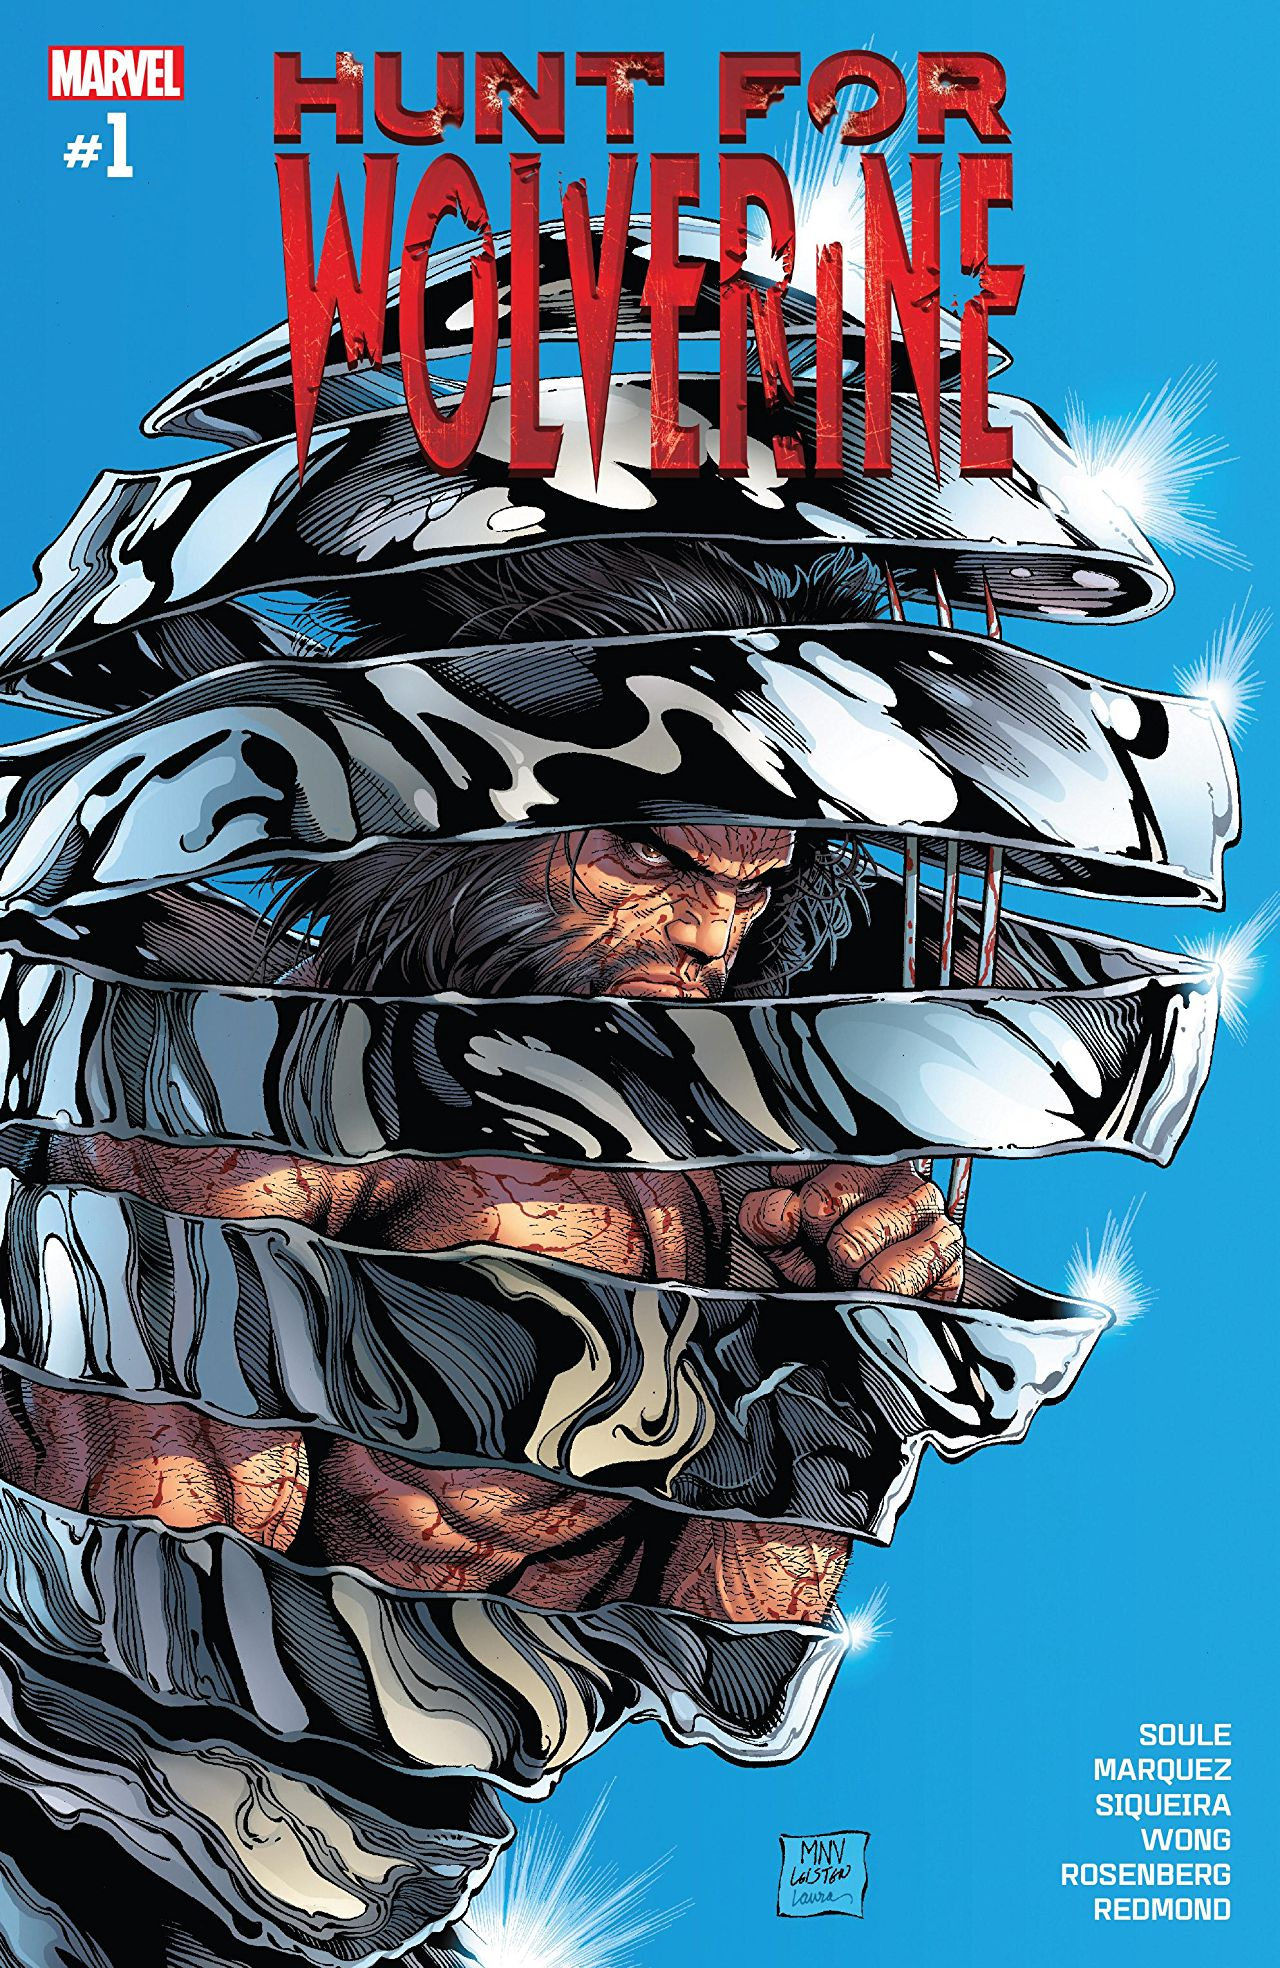 Hunt for Wolverine #1 review: A mutant mystery dawns